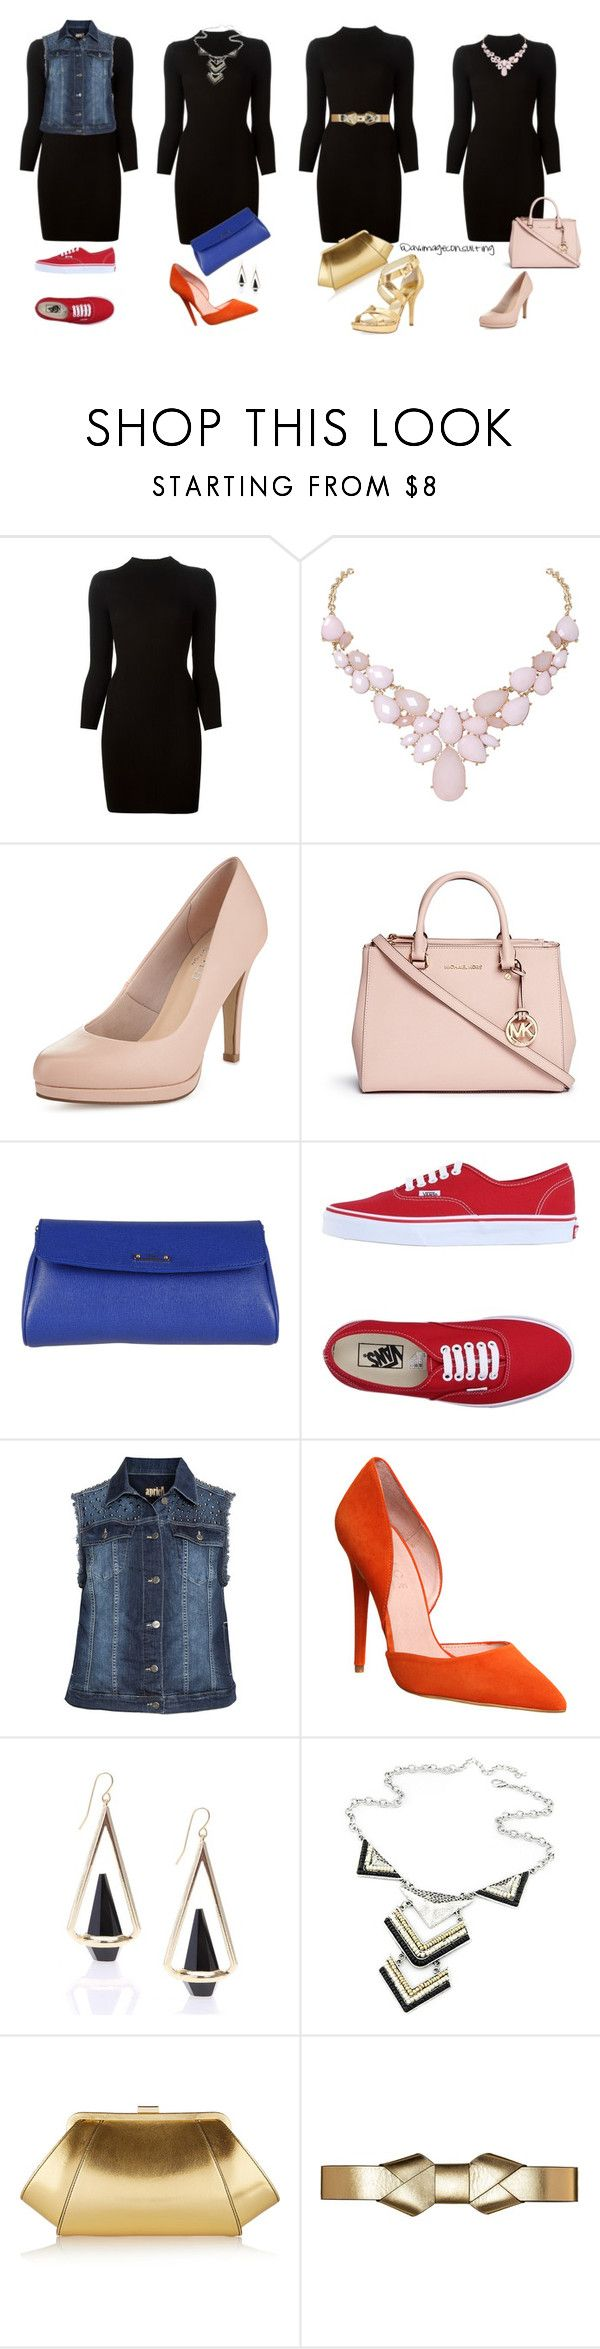 """""""one dress many options"""" by avconsulting on Polyvore featuring moda, Maison Margiela, Humble Chic, Michael Kors, Fendi, Vans, aprico, Office, WithChic y ZAC Zac Posen"""